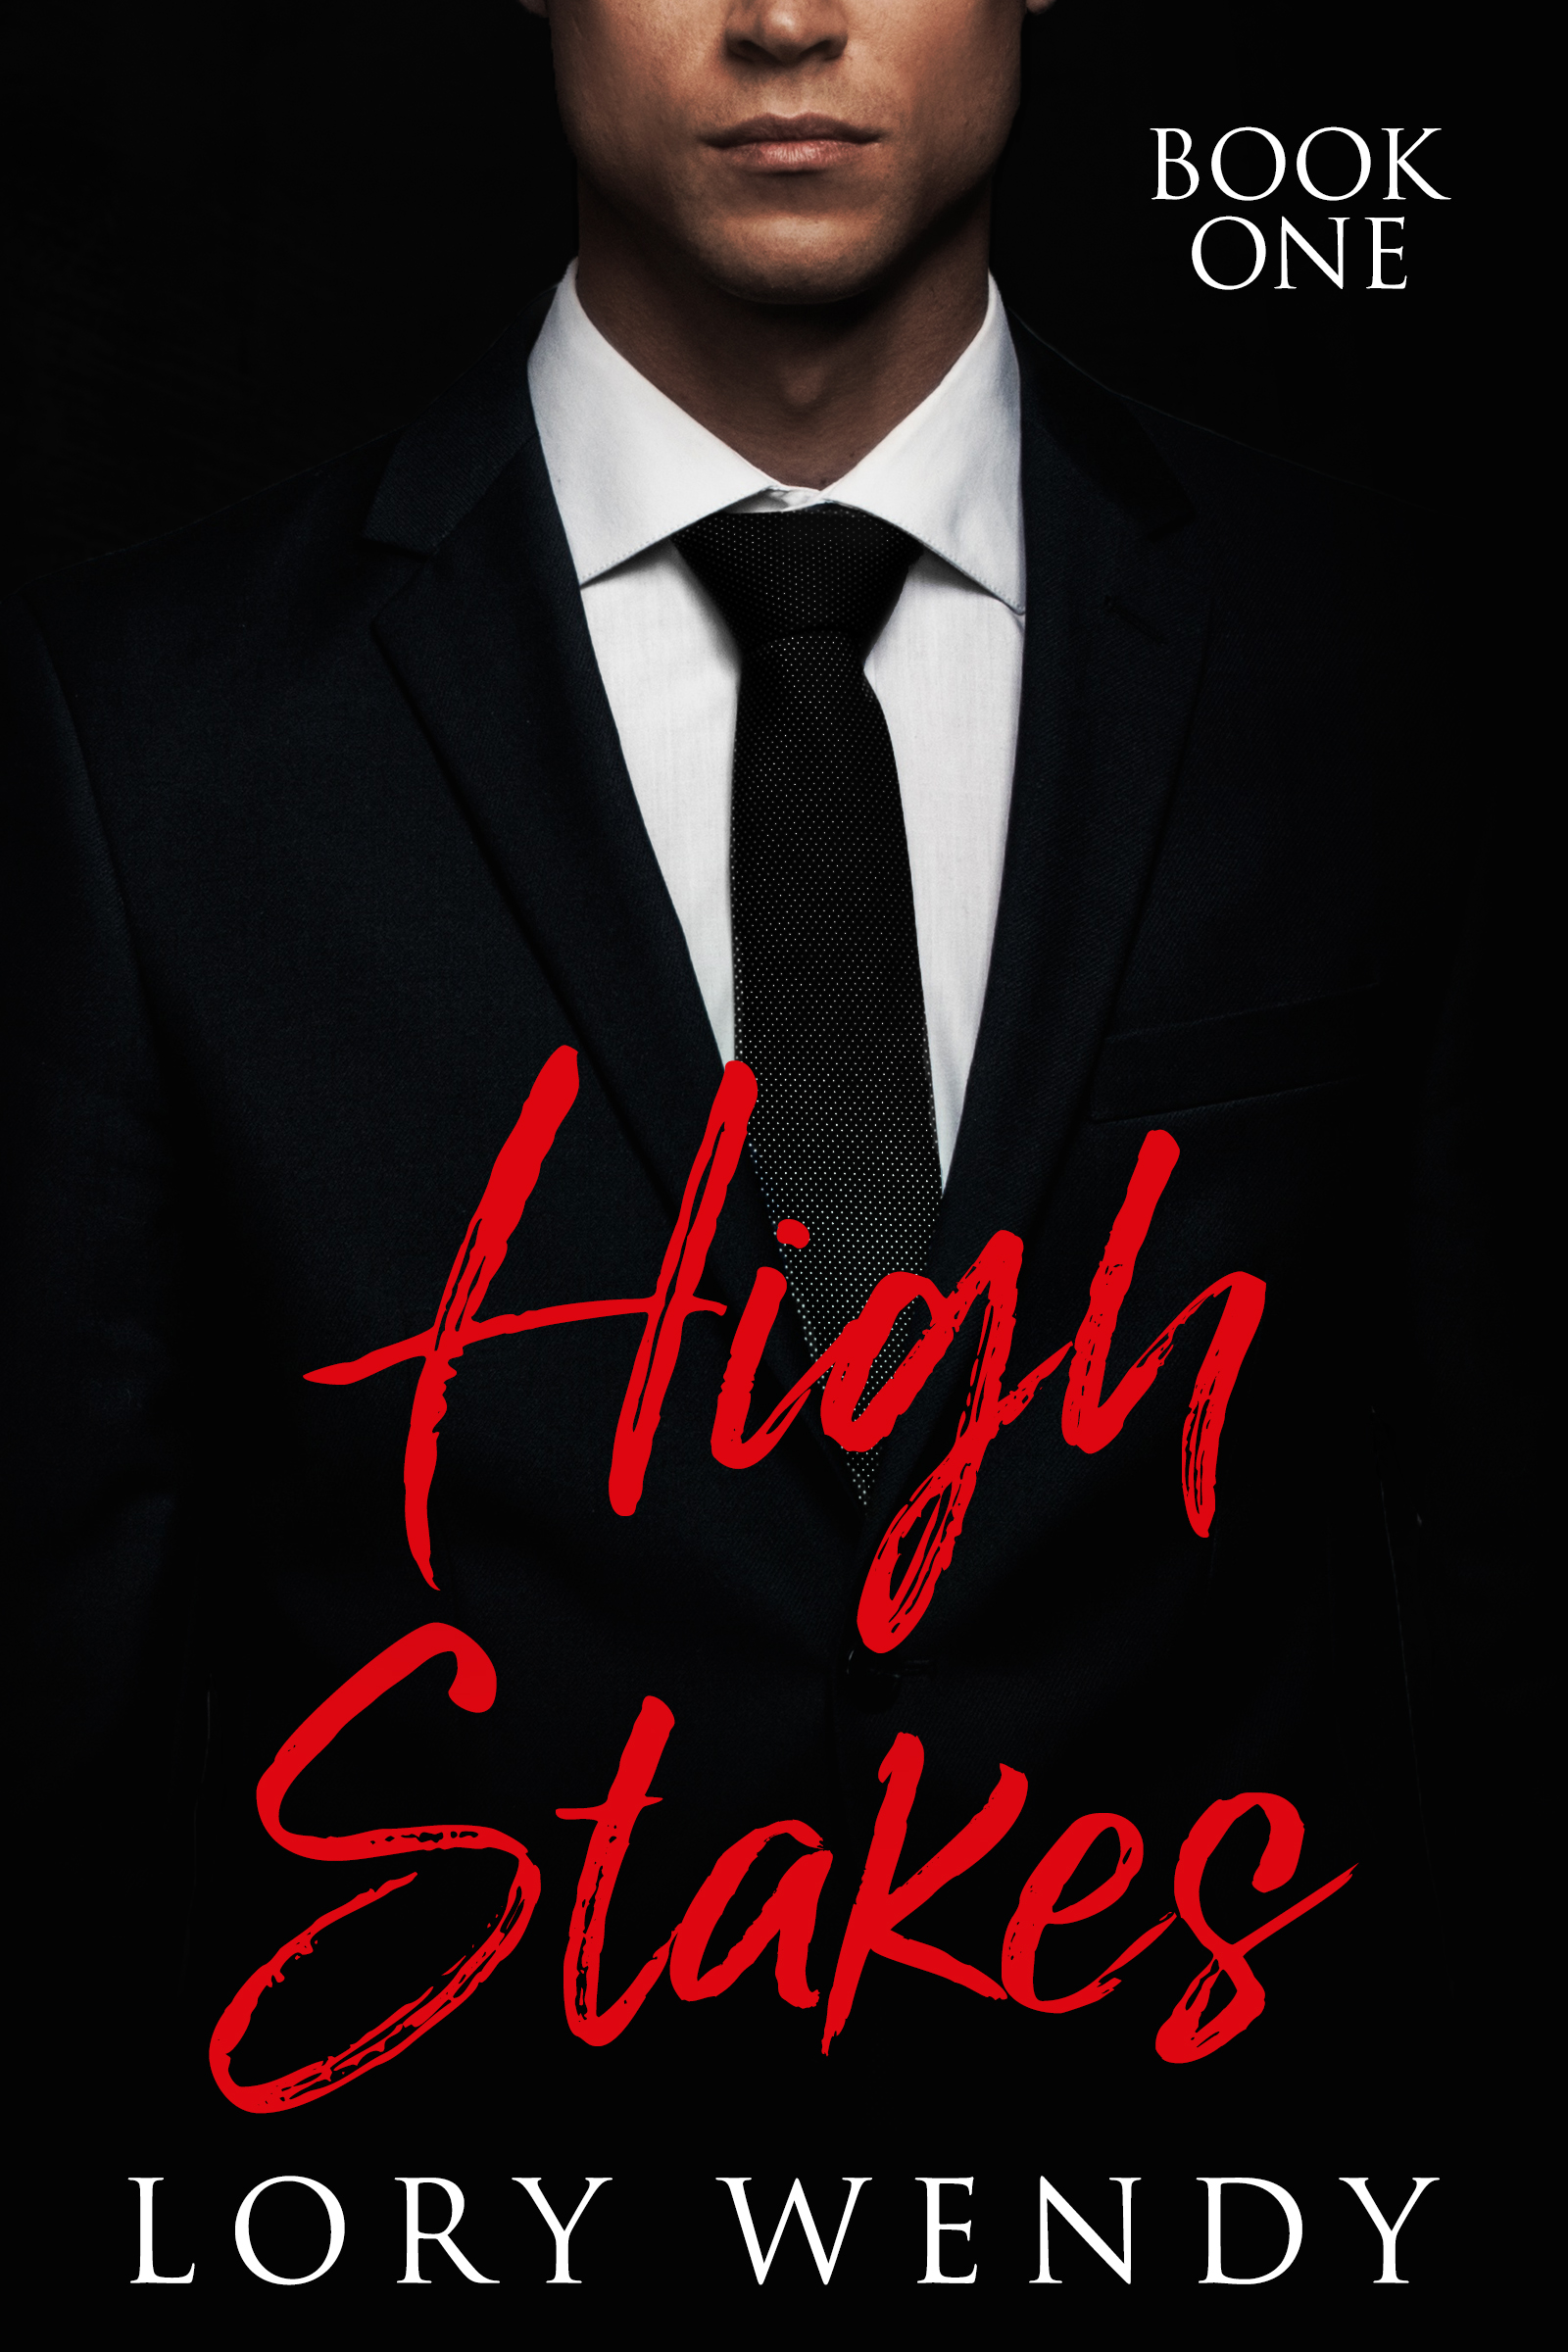 HIGH STAKES - Julian is dark and dangerous yet so captivating, Selena can't resist him.Unhappy with her life, Selena Monroe longs for something more exciting and intriguing. However, she can't possibly get away from the guilty grip her sister has on her. When Selena encounters the mysterious and handsome Julian Caine, everything changes—and not all for the better.Attempting to resist the sexy and seemingly sinister man is harder than Selena ever imagined. The more she fights her desire for him, the deeper she becomes entangled in his dark and sordid life. When Selena learns the severity of her sister's lies and the connection she has to Julian, it's up to her to fight her passion for a man she shouldn't have or battle her sister over the truth. But, one thing is for certain: she can't have both.HIGH STAKES is Book 1 in a Contemporary Romance Duet.